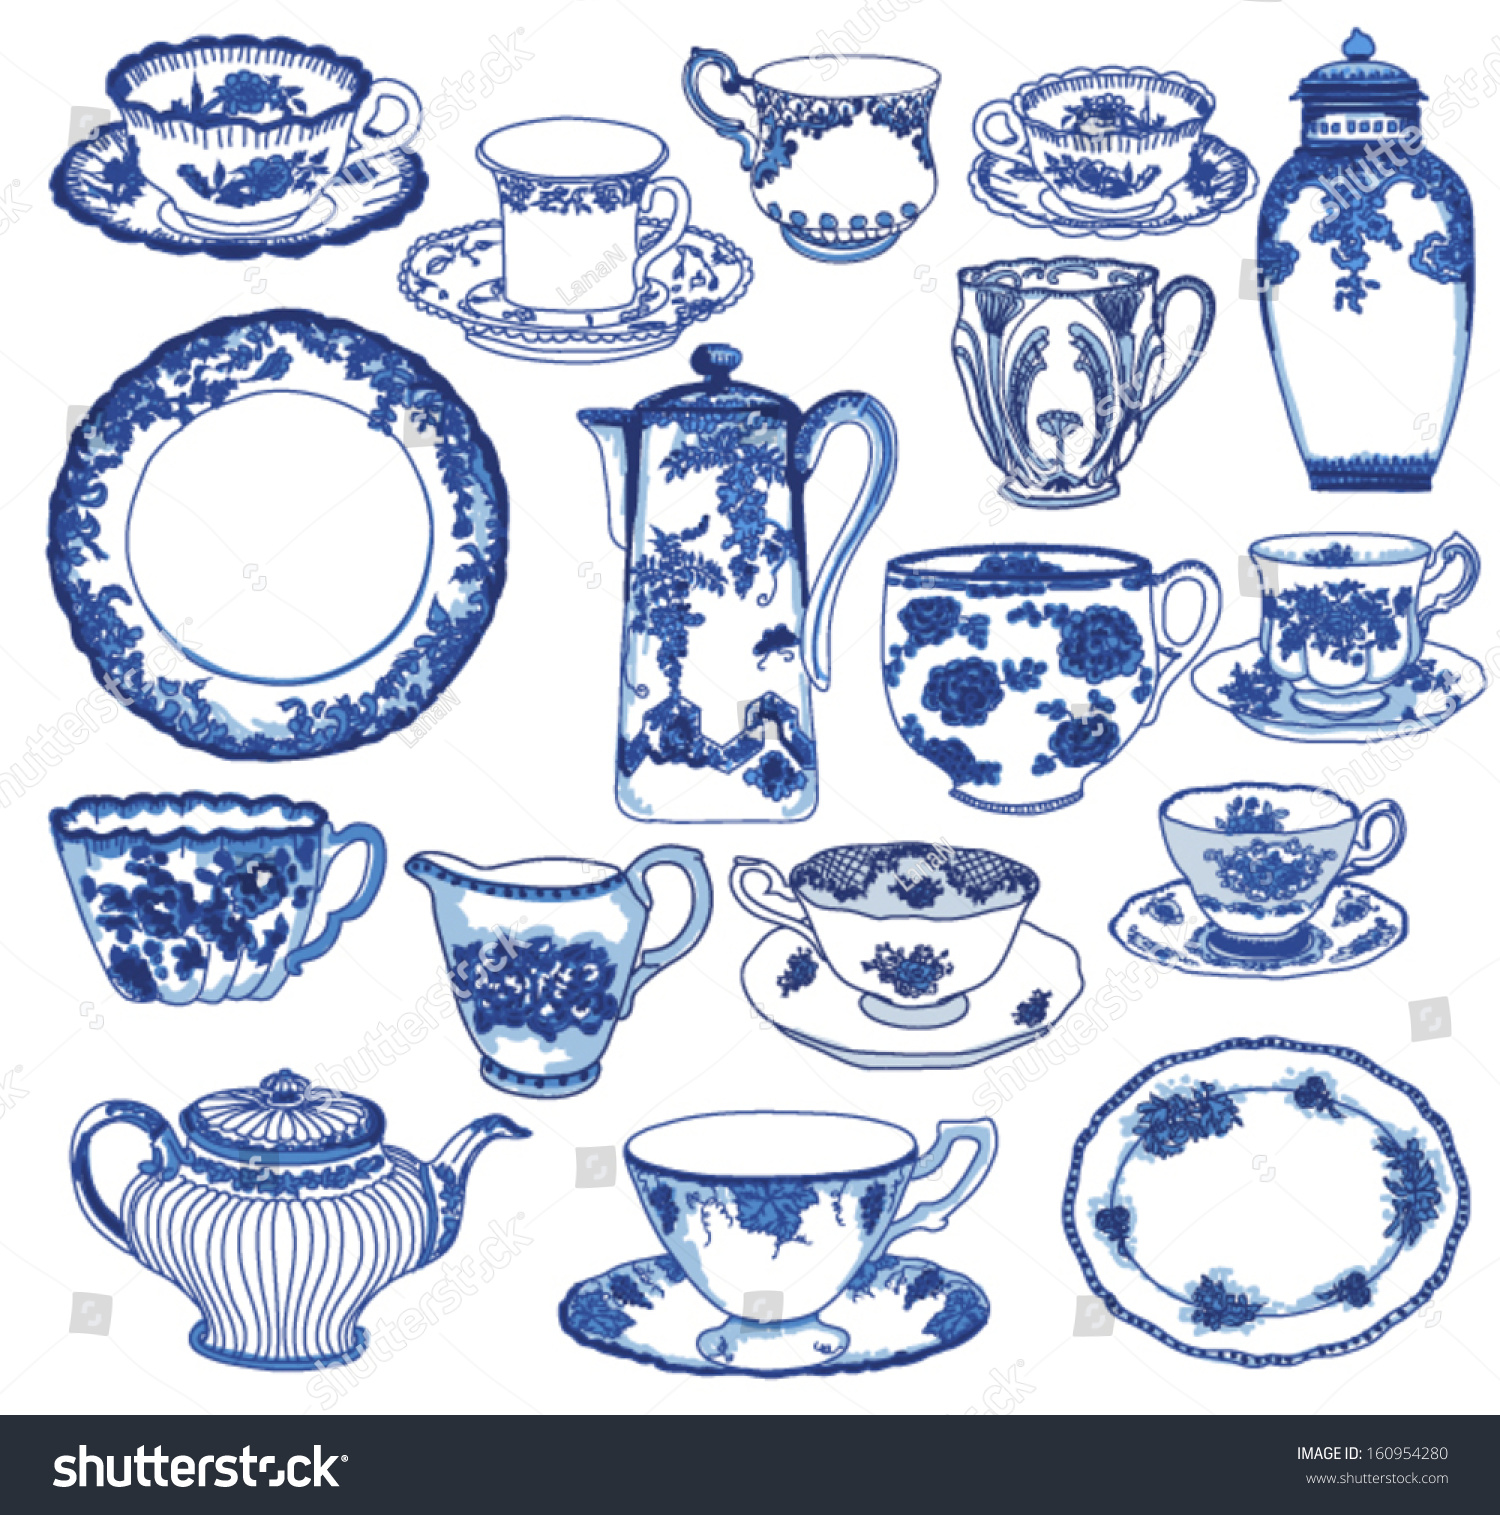 Fine China - Set of hand drawn porcelain teacups and saucers teapots plates  sc 1 st  Shutterstock & Fine China Set Hand Drawn Porcelain Stock Vector 160954280 ...